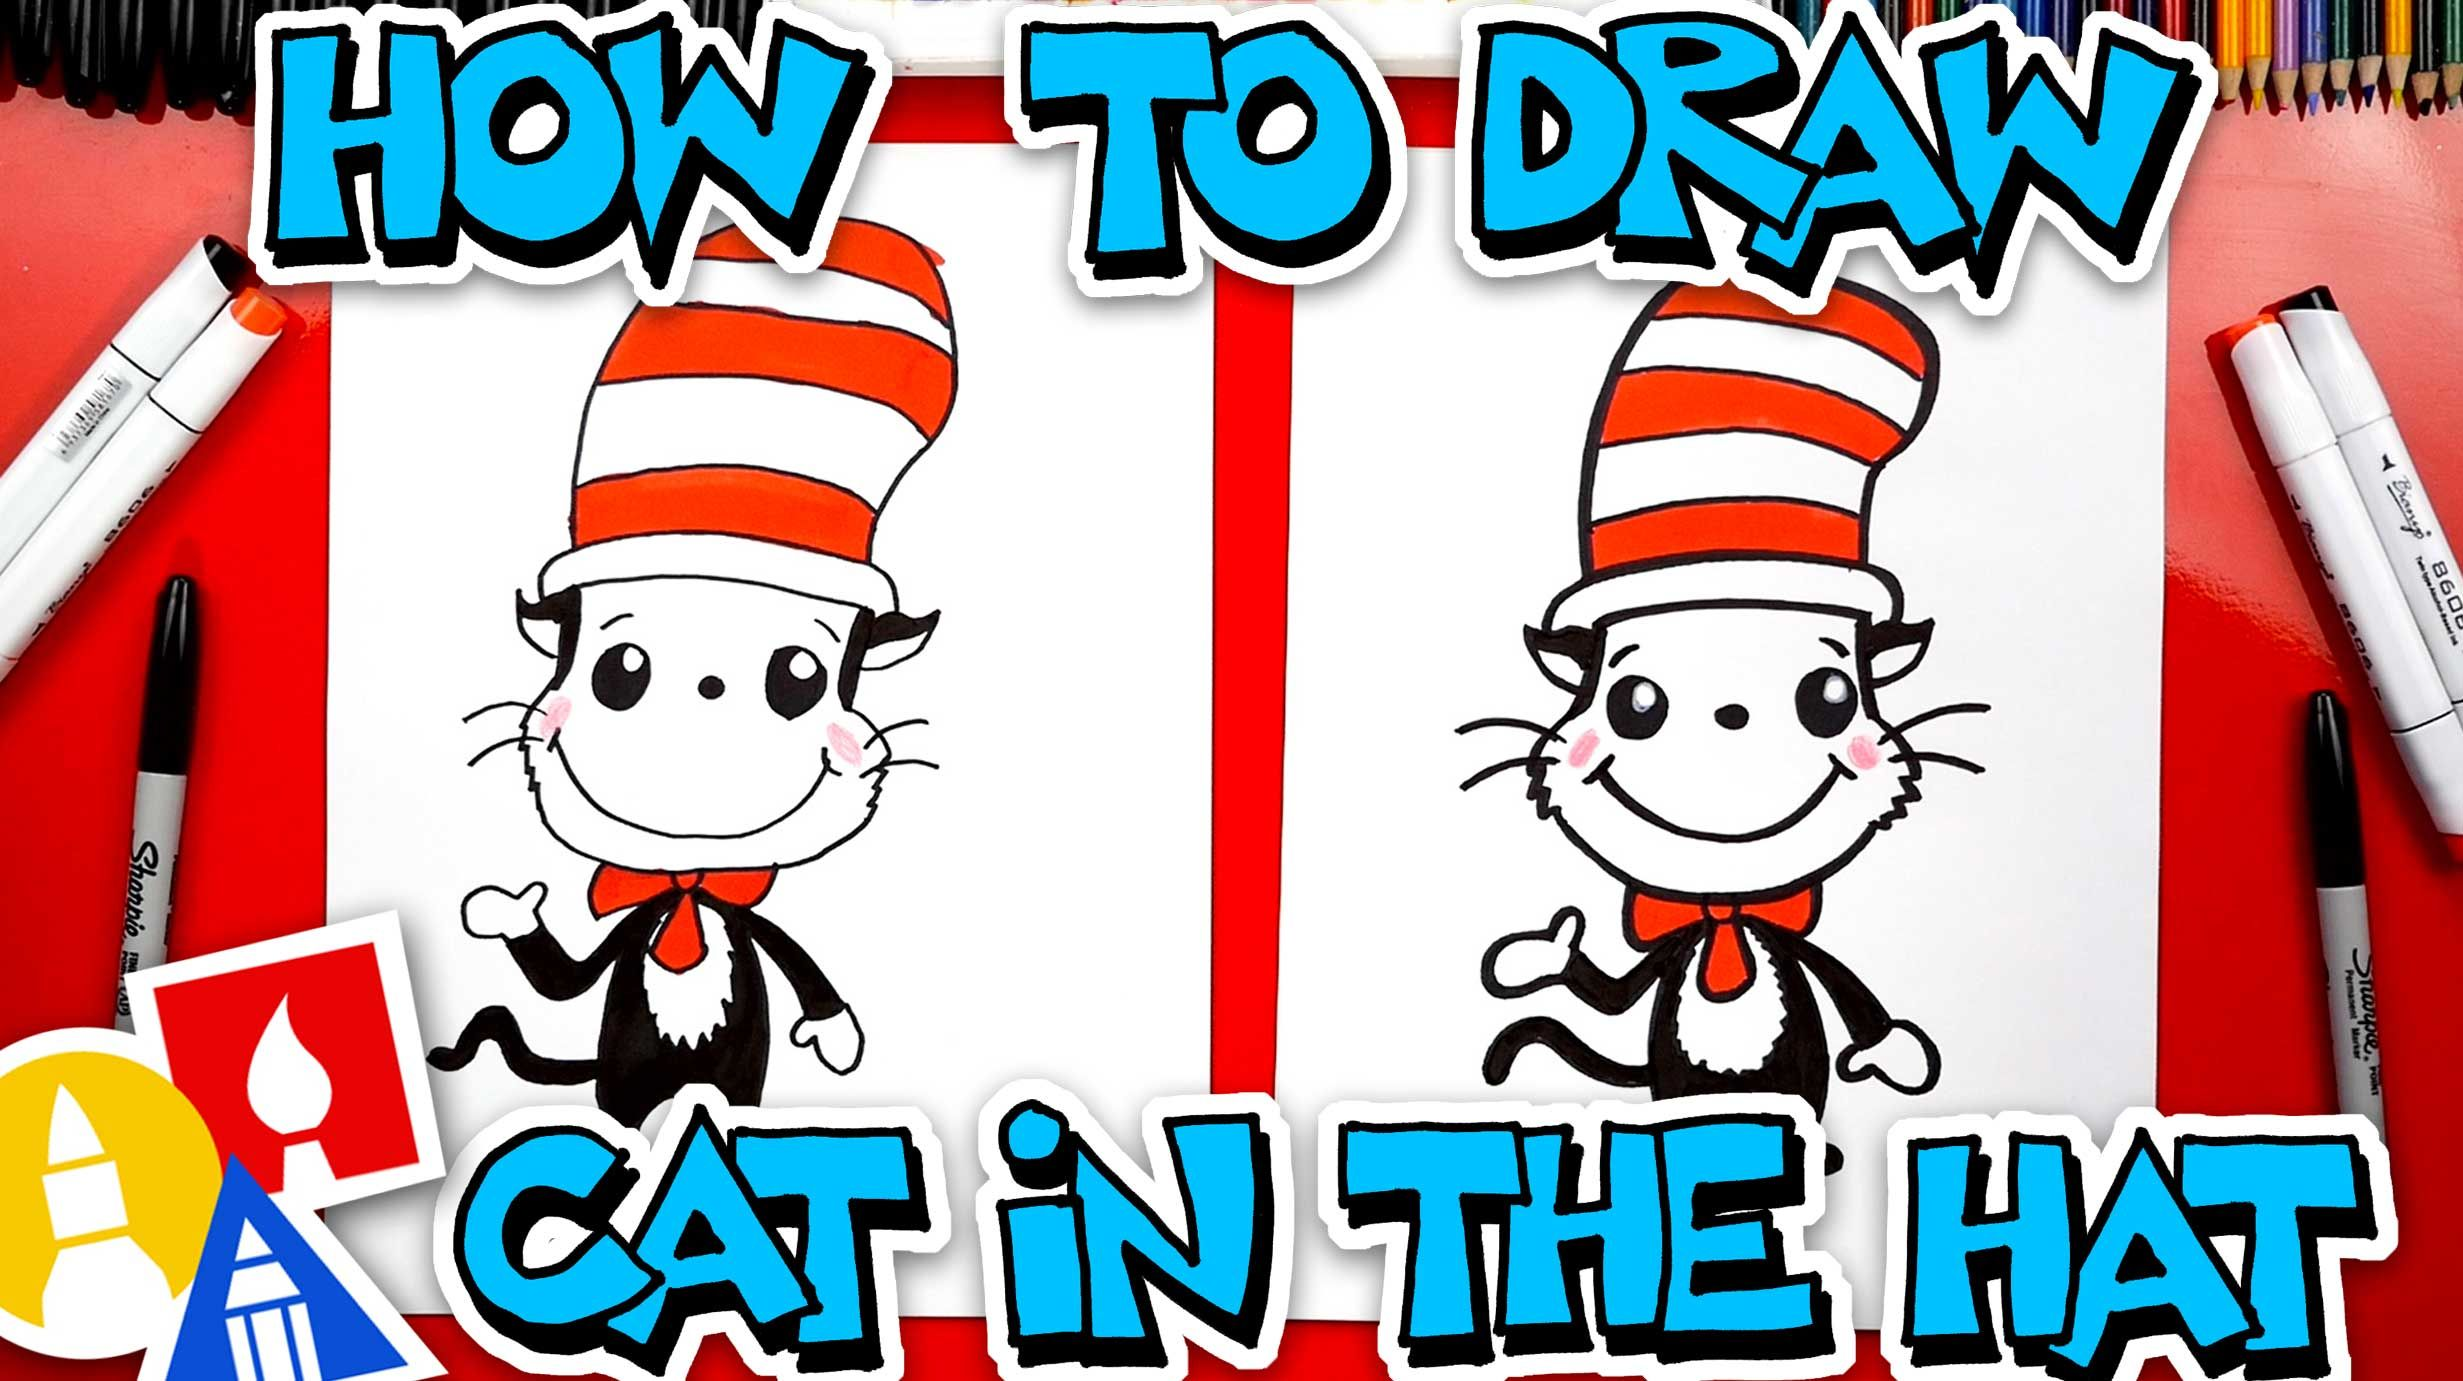 How To Draw The Cat In The Hat Easy Cartoon Version Art For Kids Hub Art For Kids Hub Art For Kids Simple Cartoon